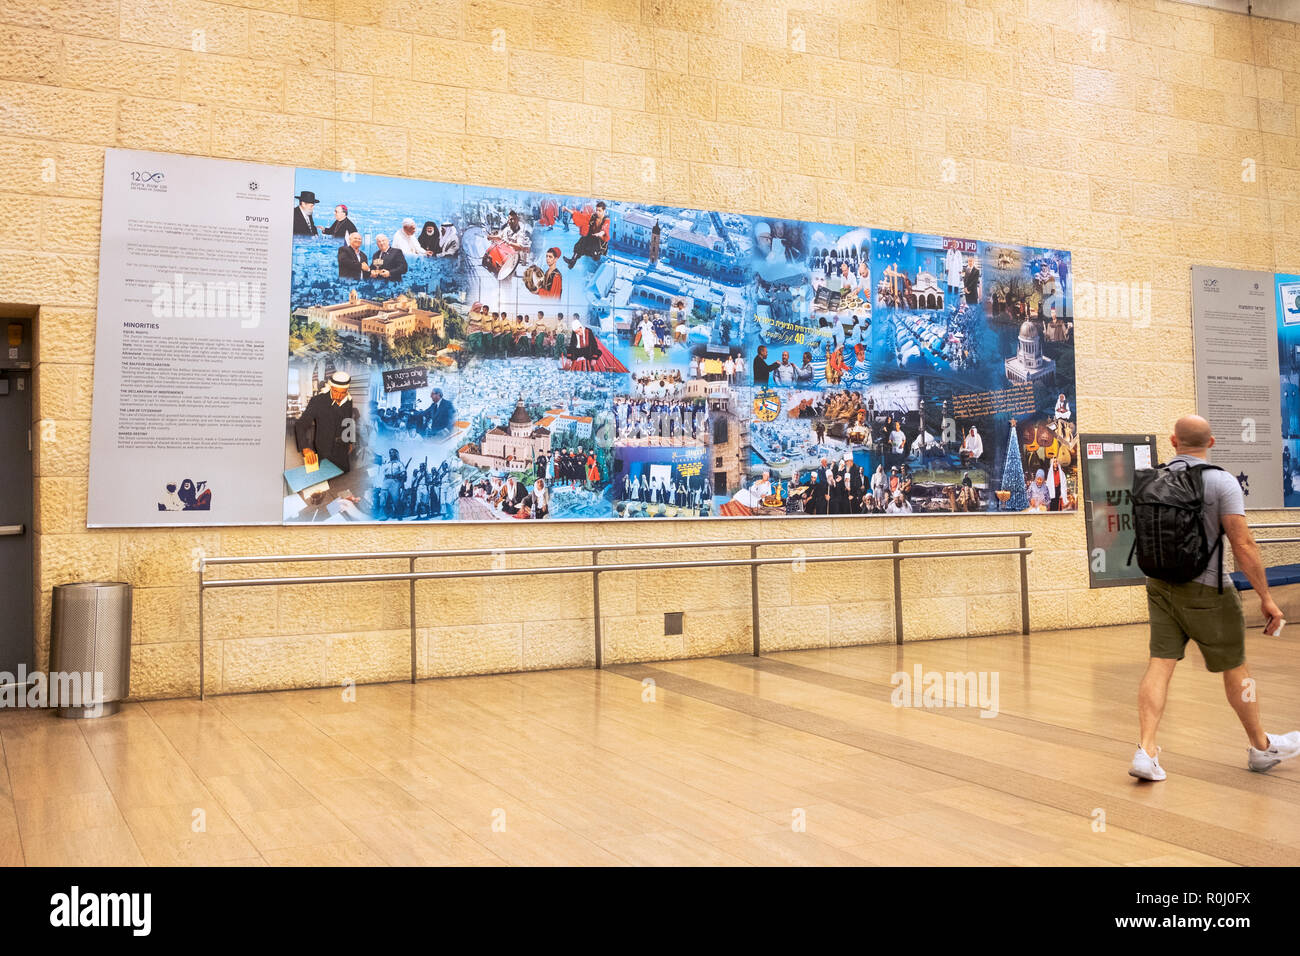 A traveler passes one of the '120 Years of Zionism' murals at Ben Gurion Airport in Tel Aviv, Israel. - Stock Image